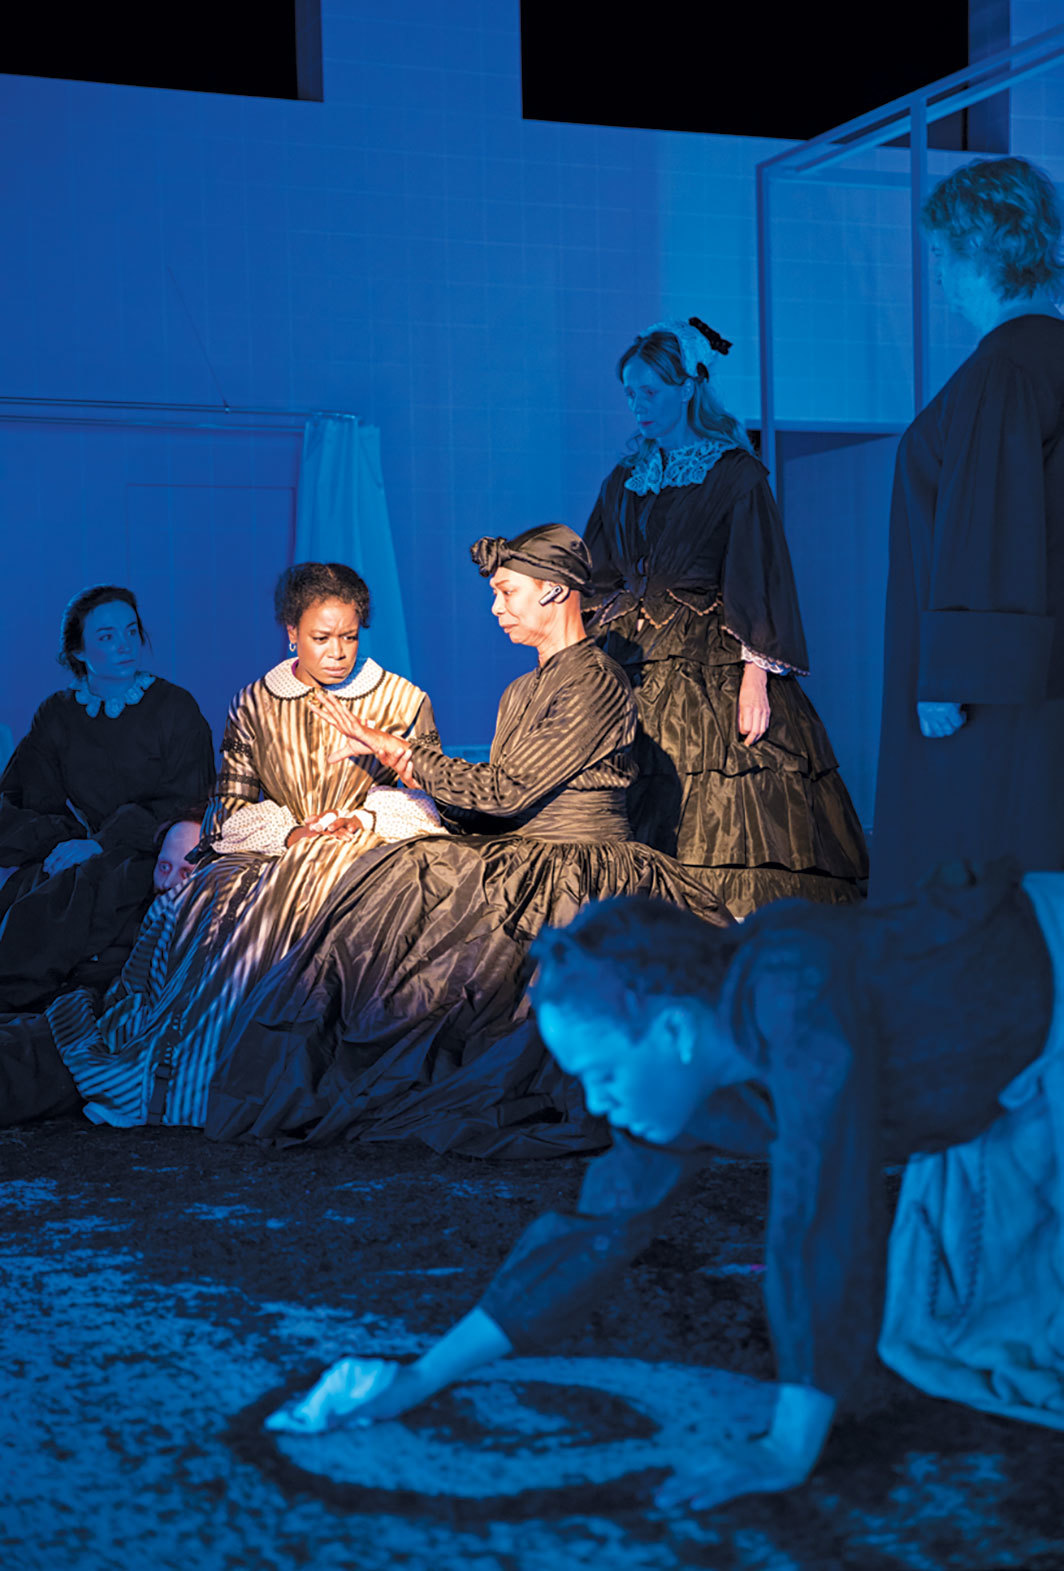 Performance view of Jackie Sibblies Drury's Marys Seacole, 2019, Claire Tow Theater, Lincoln Center, New York, February 8, 2019. From left: Miriam (Ismenia Mendes), Mary Seacole (Quincy Tyler Bernstine), Duppy Mary (Karen Kandel), May (Lucy Taylor), Mamie (Gabby Beans), and Merry (Marceline Hugot). Photo: Julieta Cervantes.